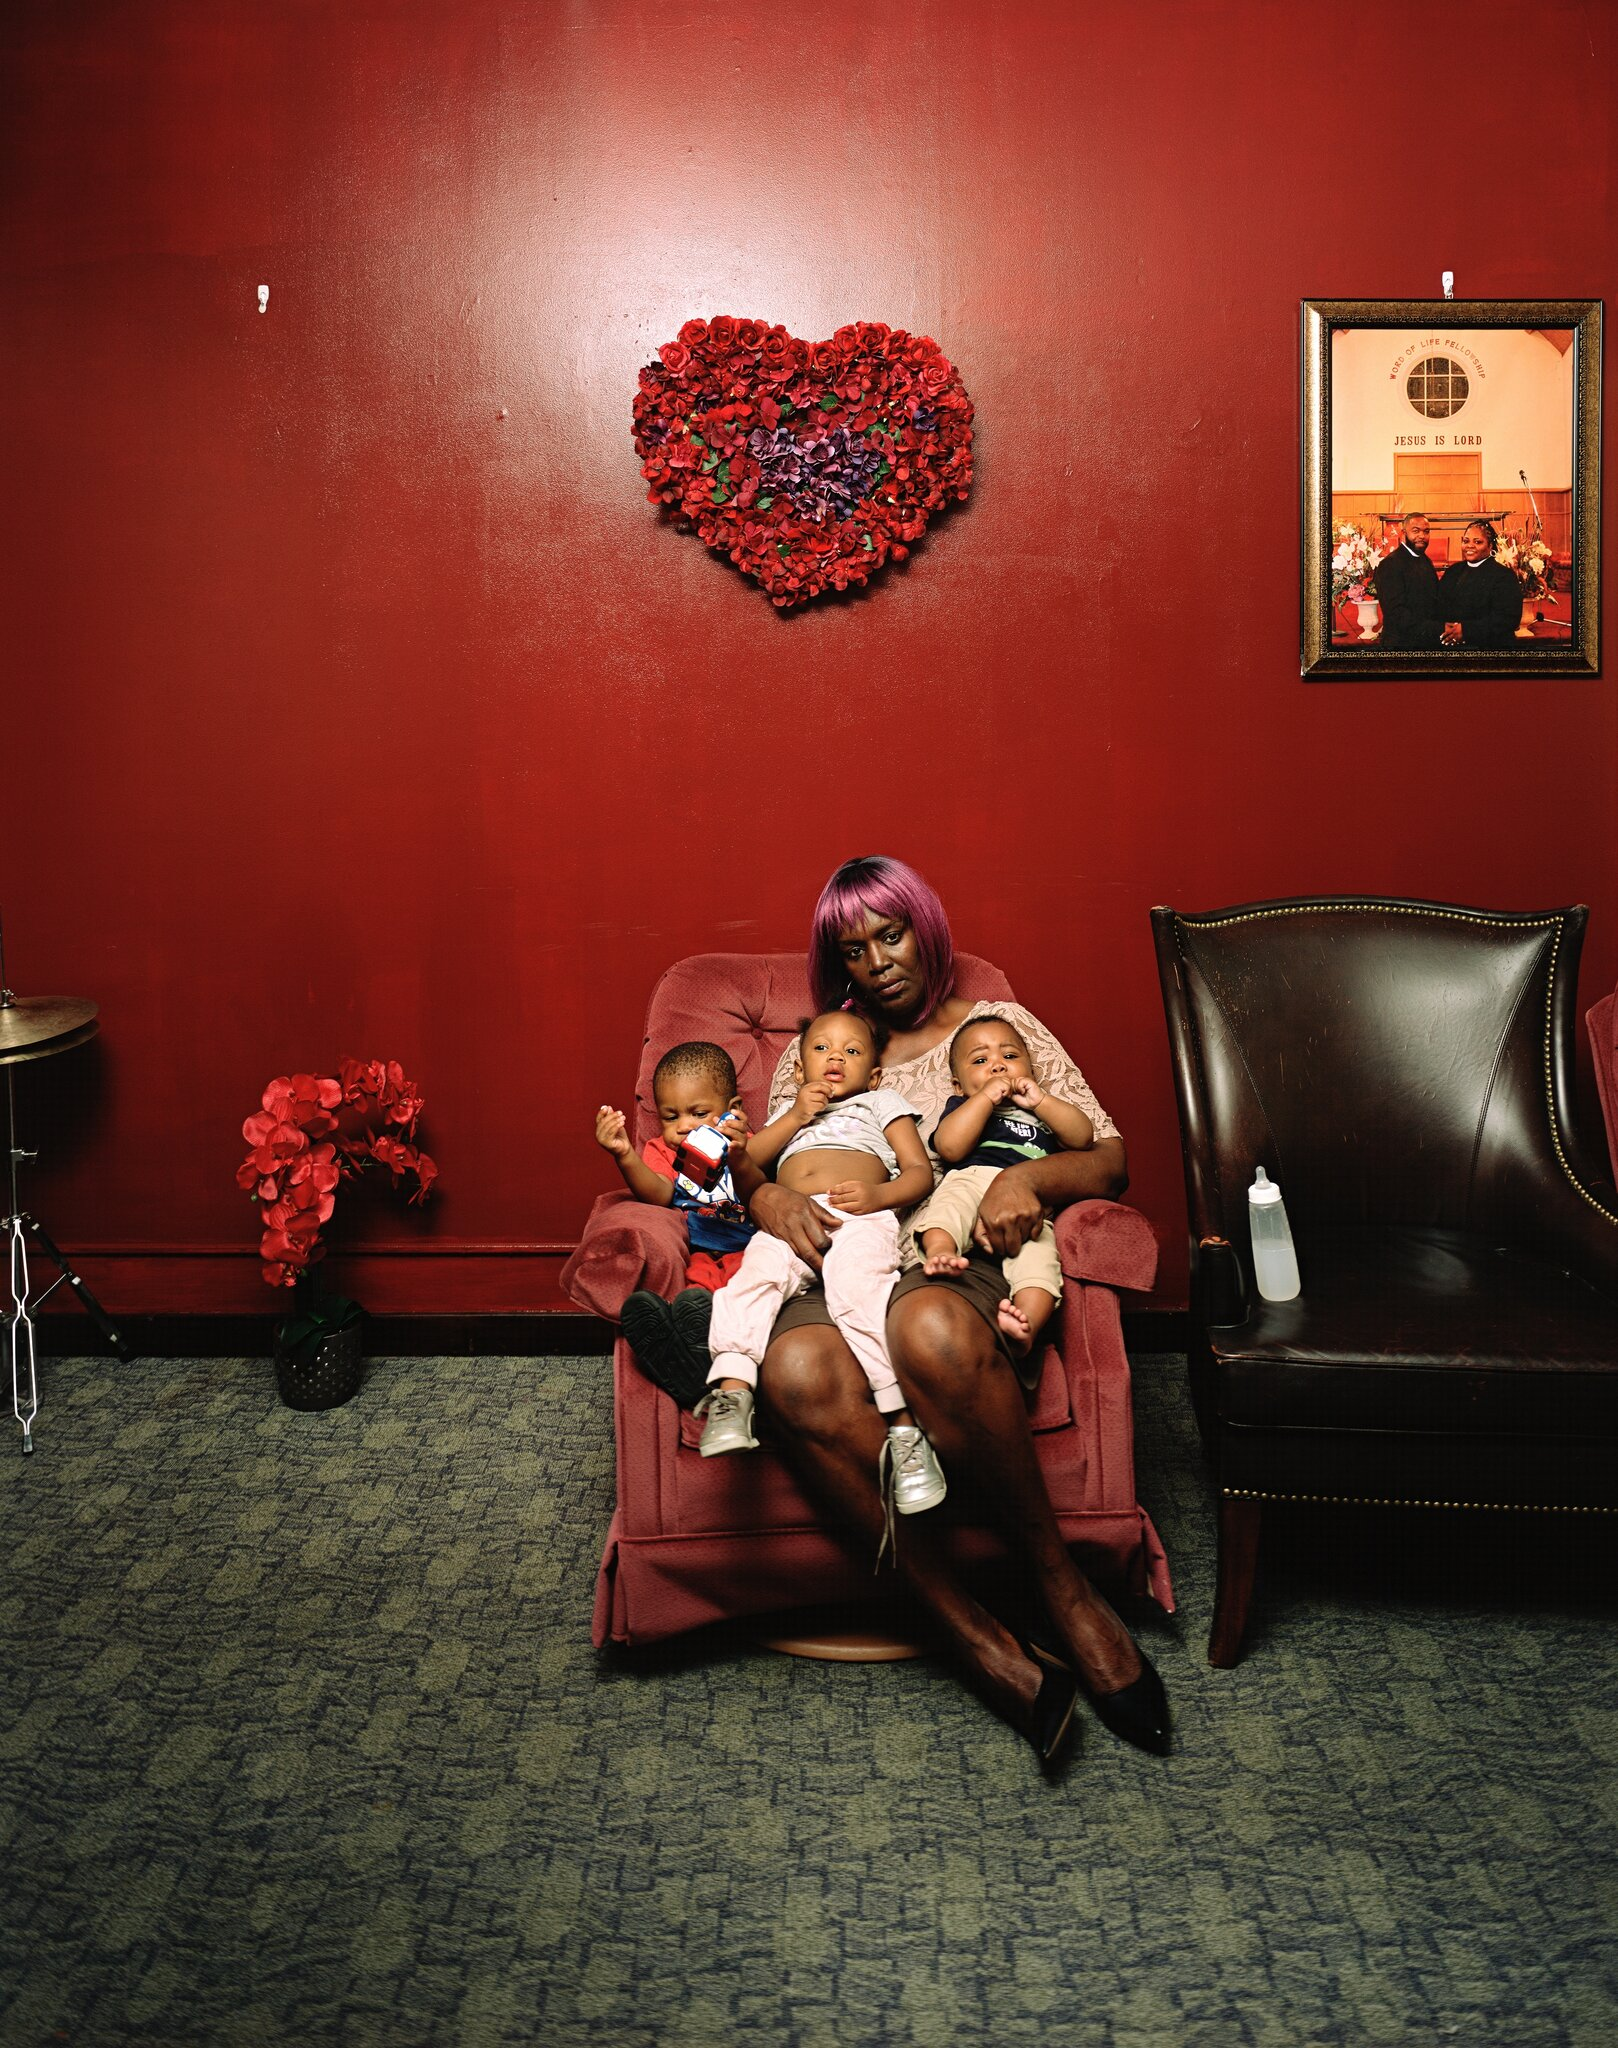 A dark-skinned woman sits on a velvet, mauve recliner chair holding three medium-skinned babies in her lap, all around the ages of 1 to 2. The wall behind her is painted a dark, shiny red, and above her a heart made from flowers hangs as a centerpiece.